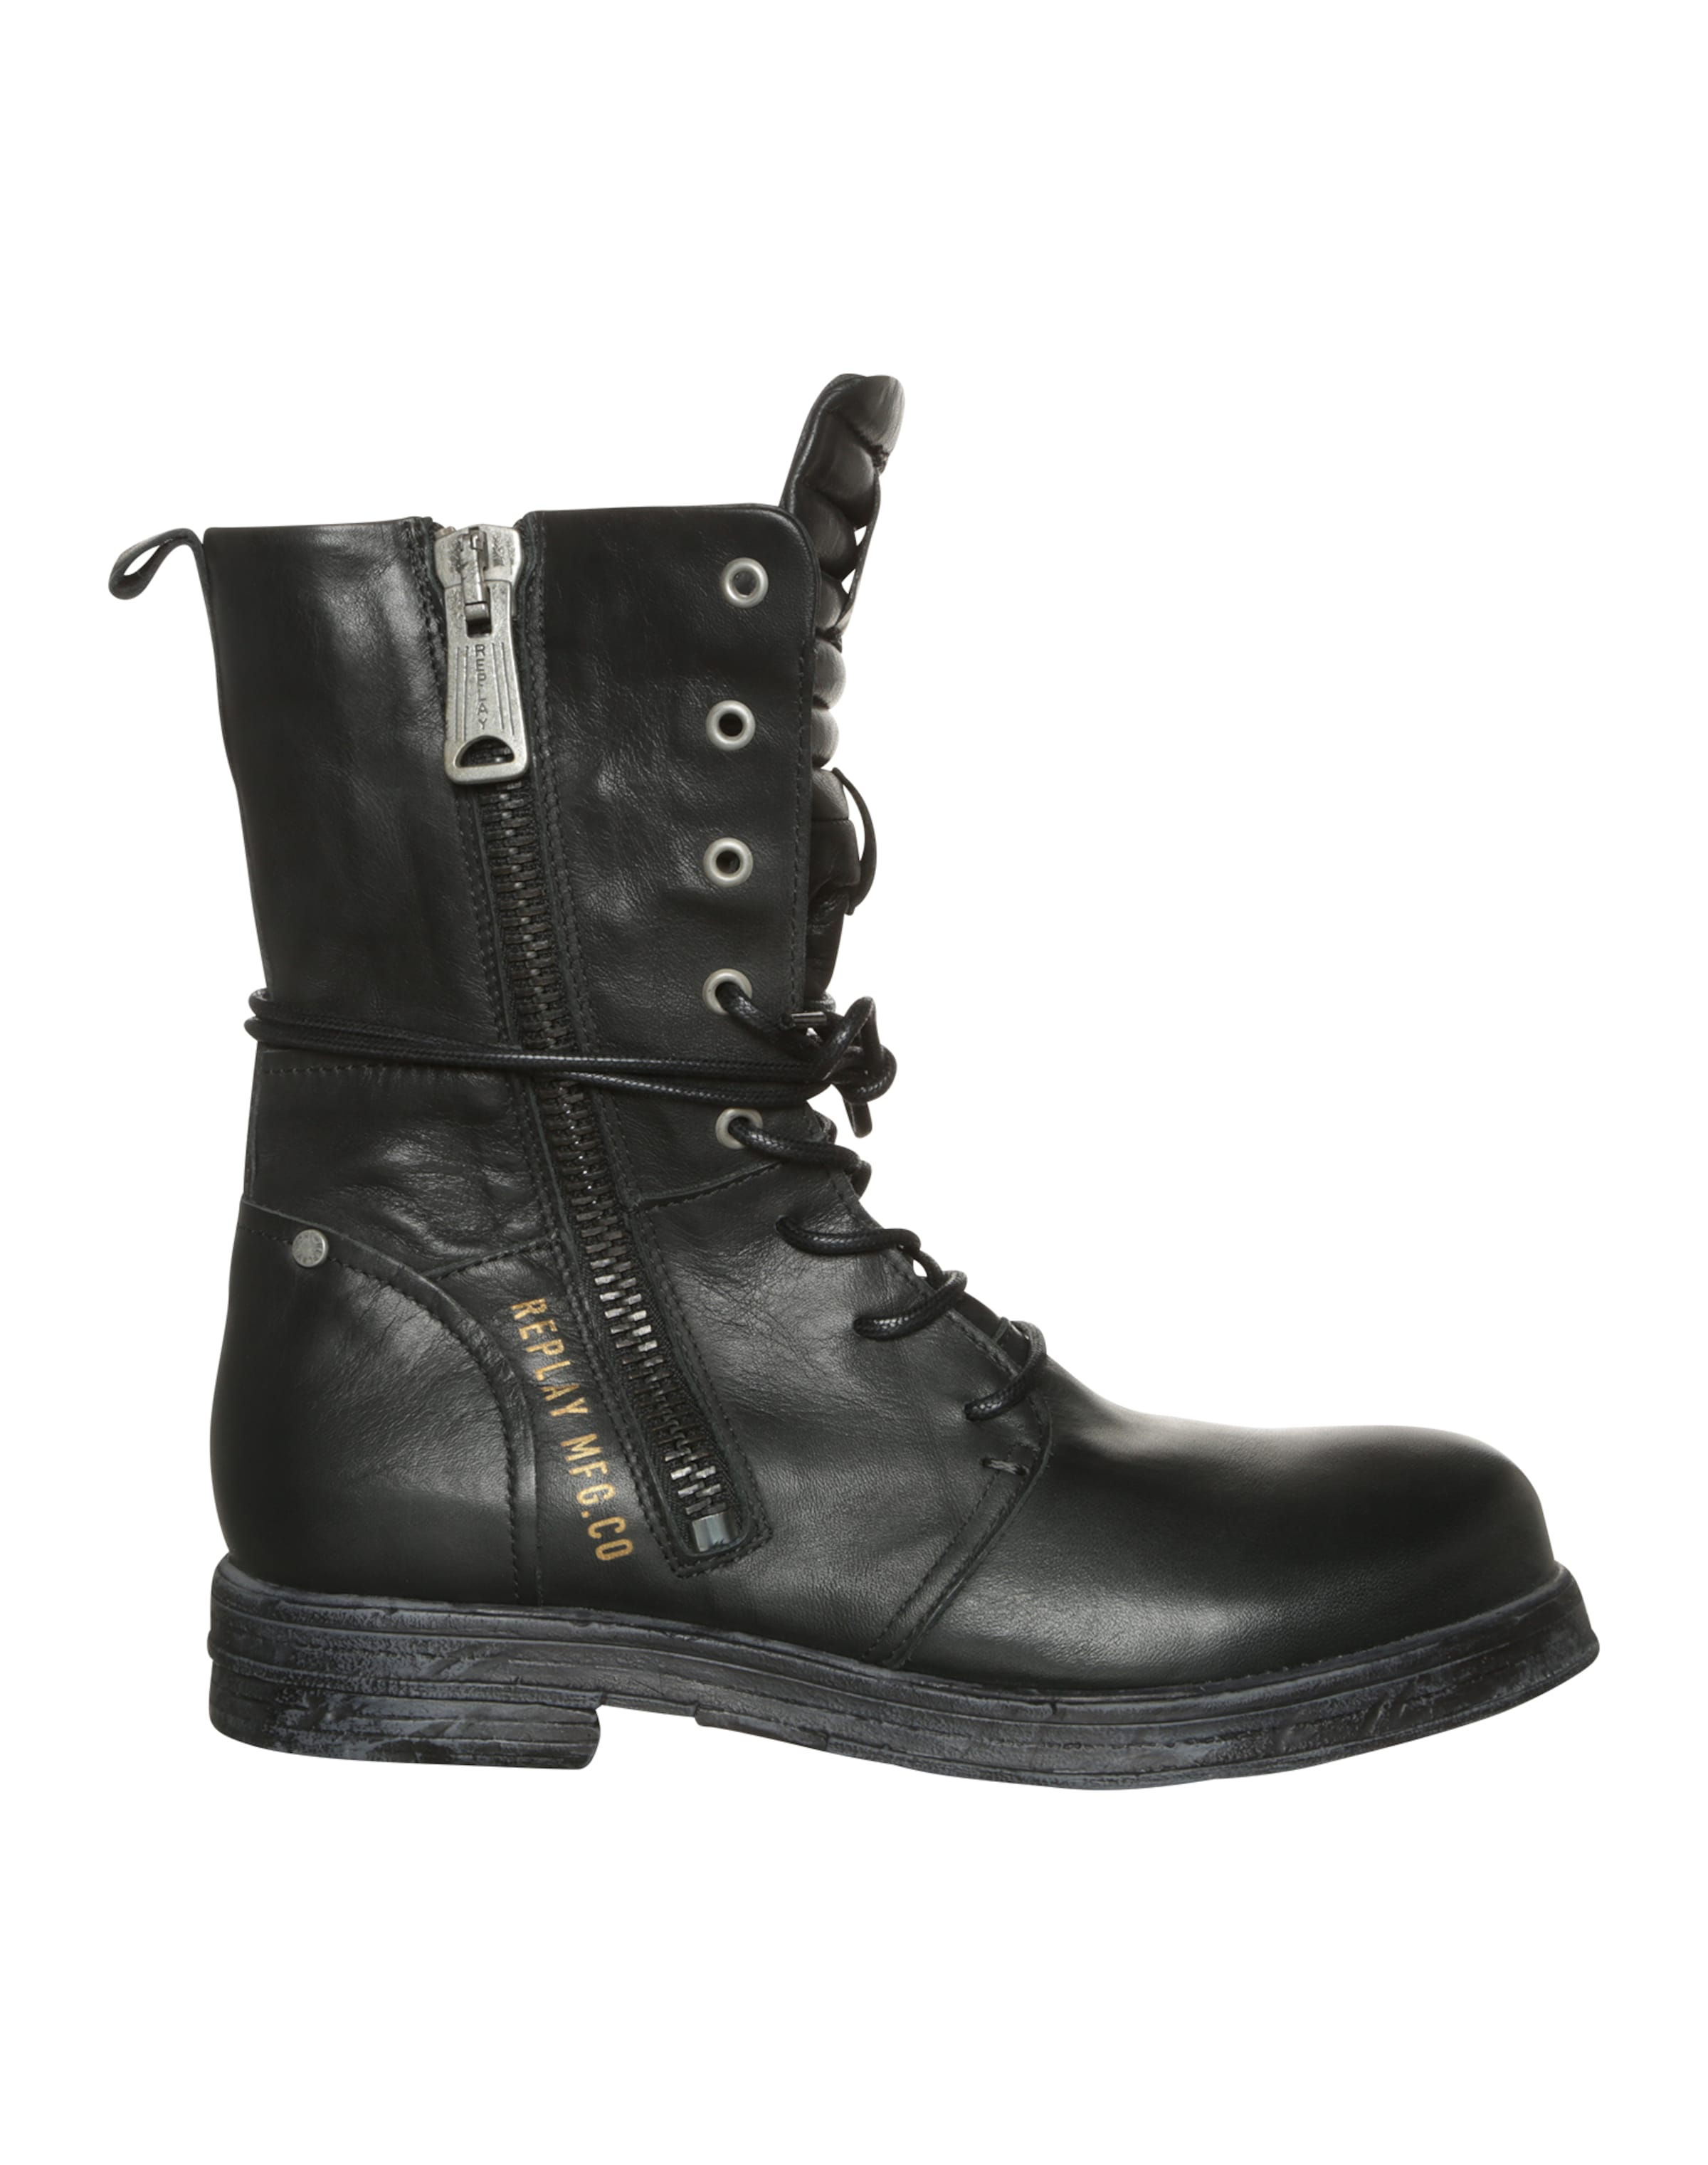 À Replay Bottines 'evy' En Noir Lacets 3LqSARjc45